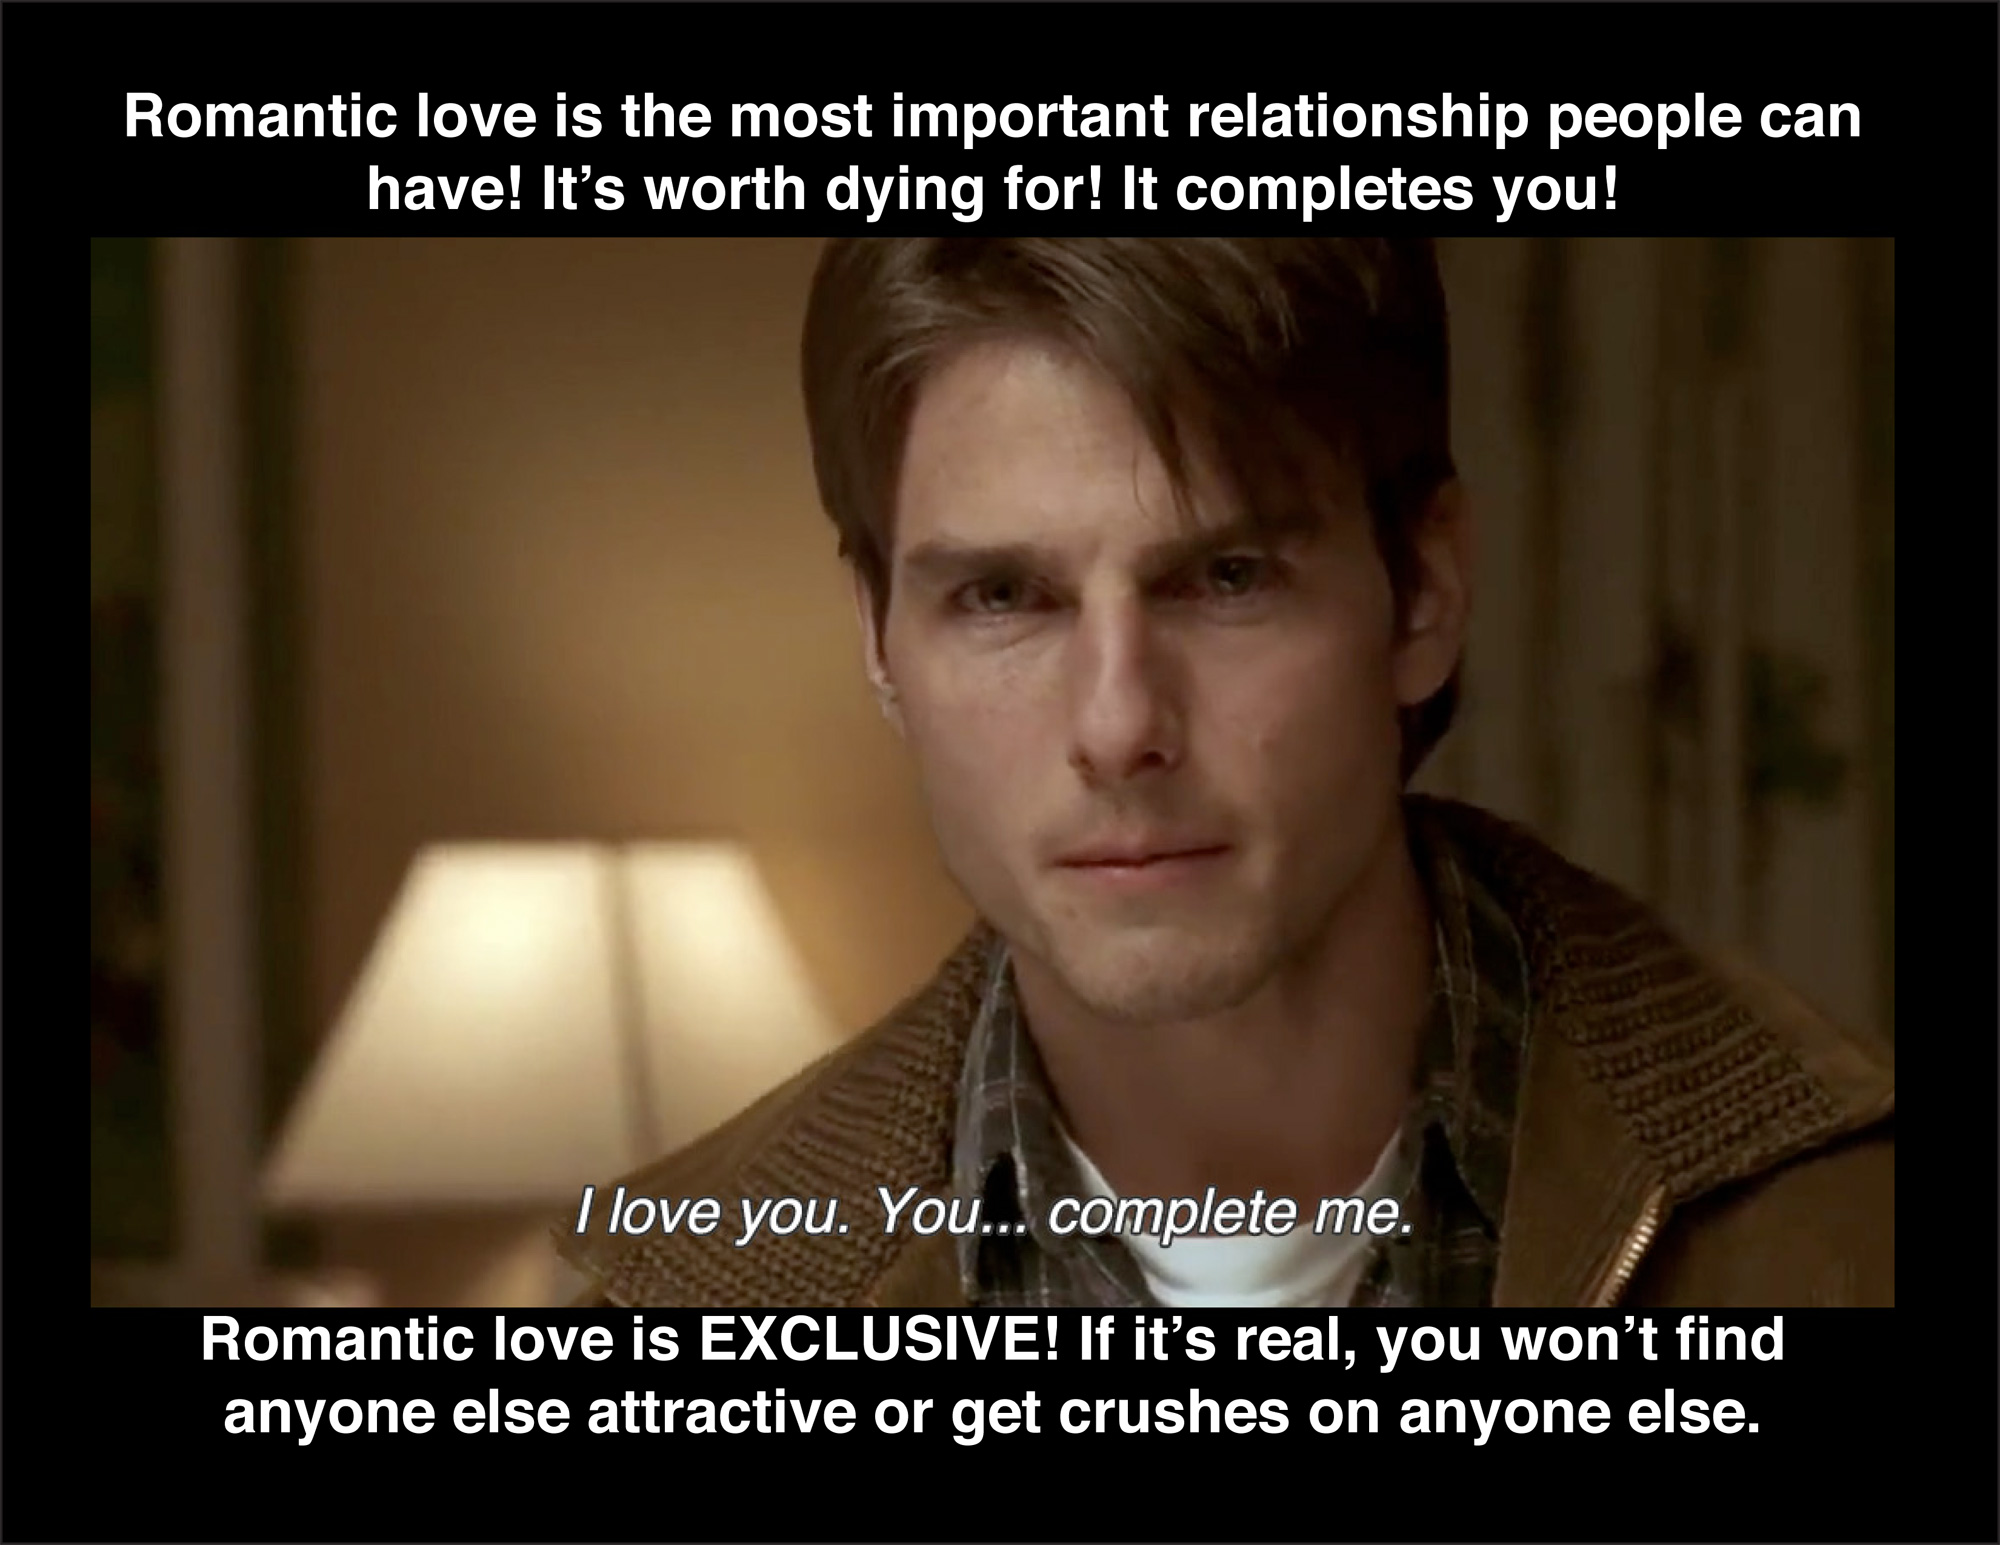 Image of Tom Cruise in Jerry McGuire - you complete me with text reading 'Romantic love is the most important relationship people can have, It's worth dying for, It completes you, Romantic love is EXCLUSIVE, If it's real, you won't find anyone else attractive or get crushes on anyone else.